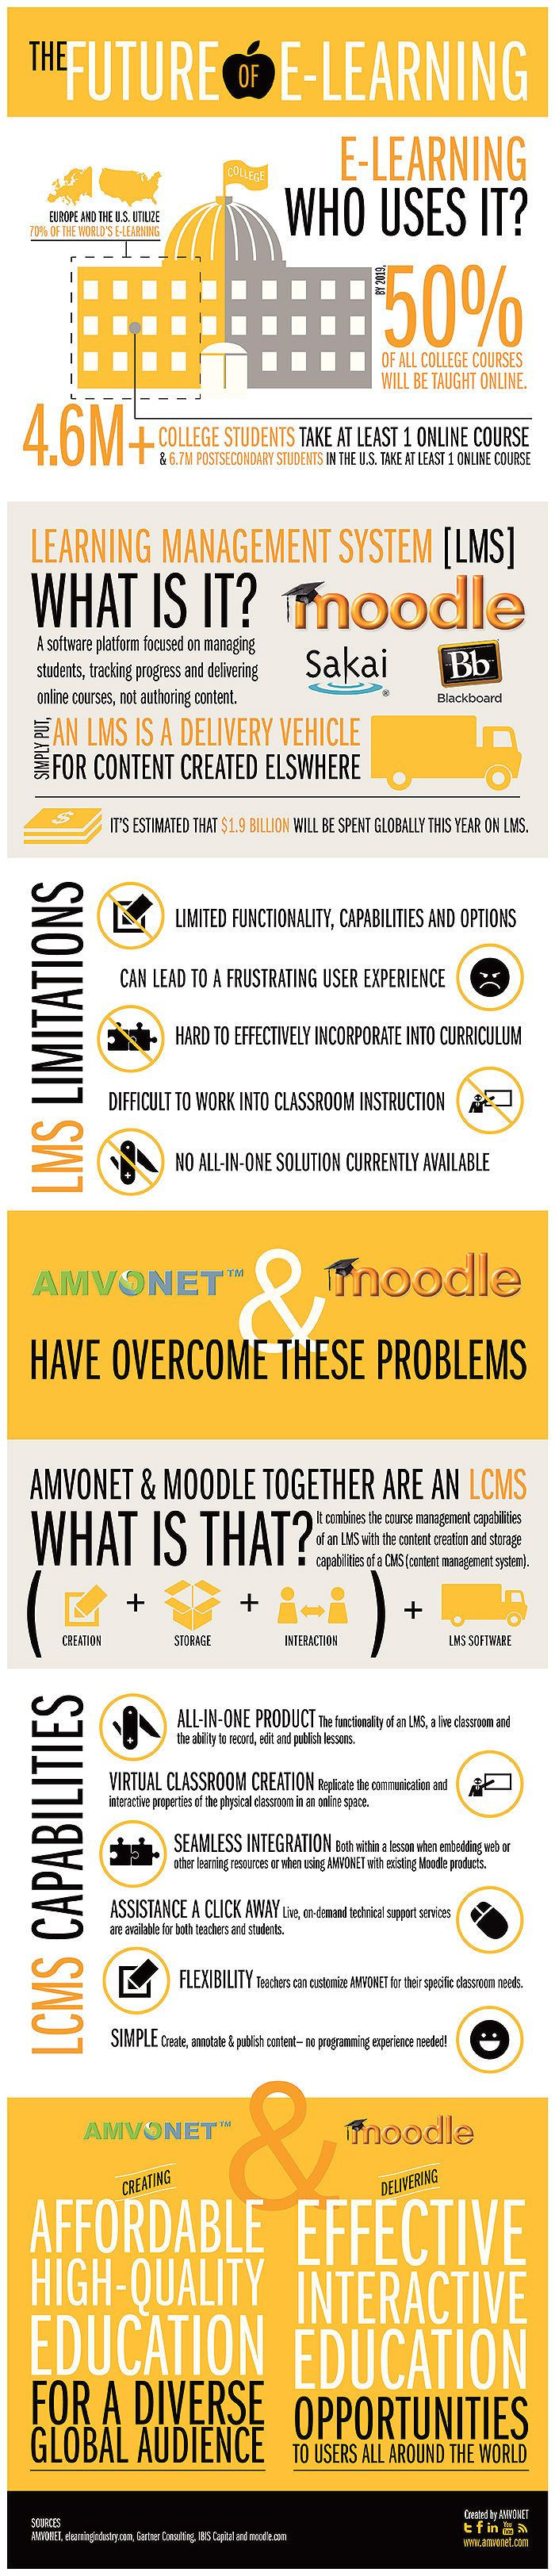 The Future Of E-Learning is amazing to me especially the point that this infograph makes that by the year 2019 50% of all college courses will be tough online!  http://www.amvonet.com is a online site that provides e-Learning solutions for K-12, higher education, corporate development and healthcare.